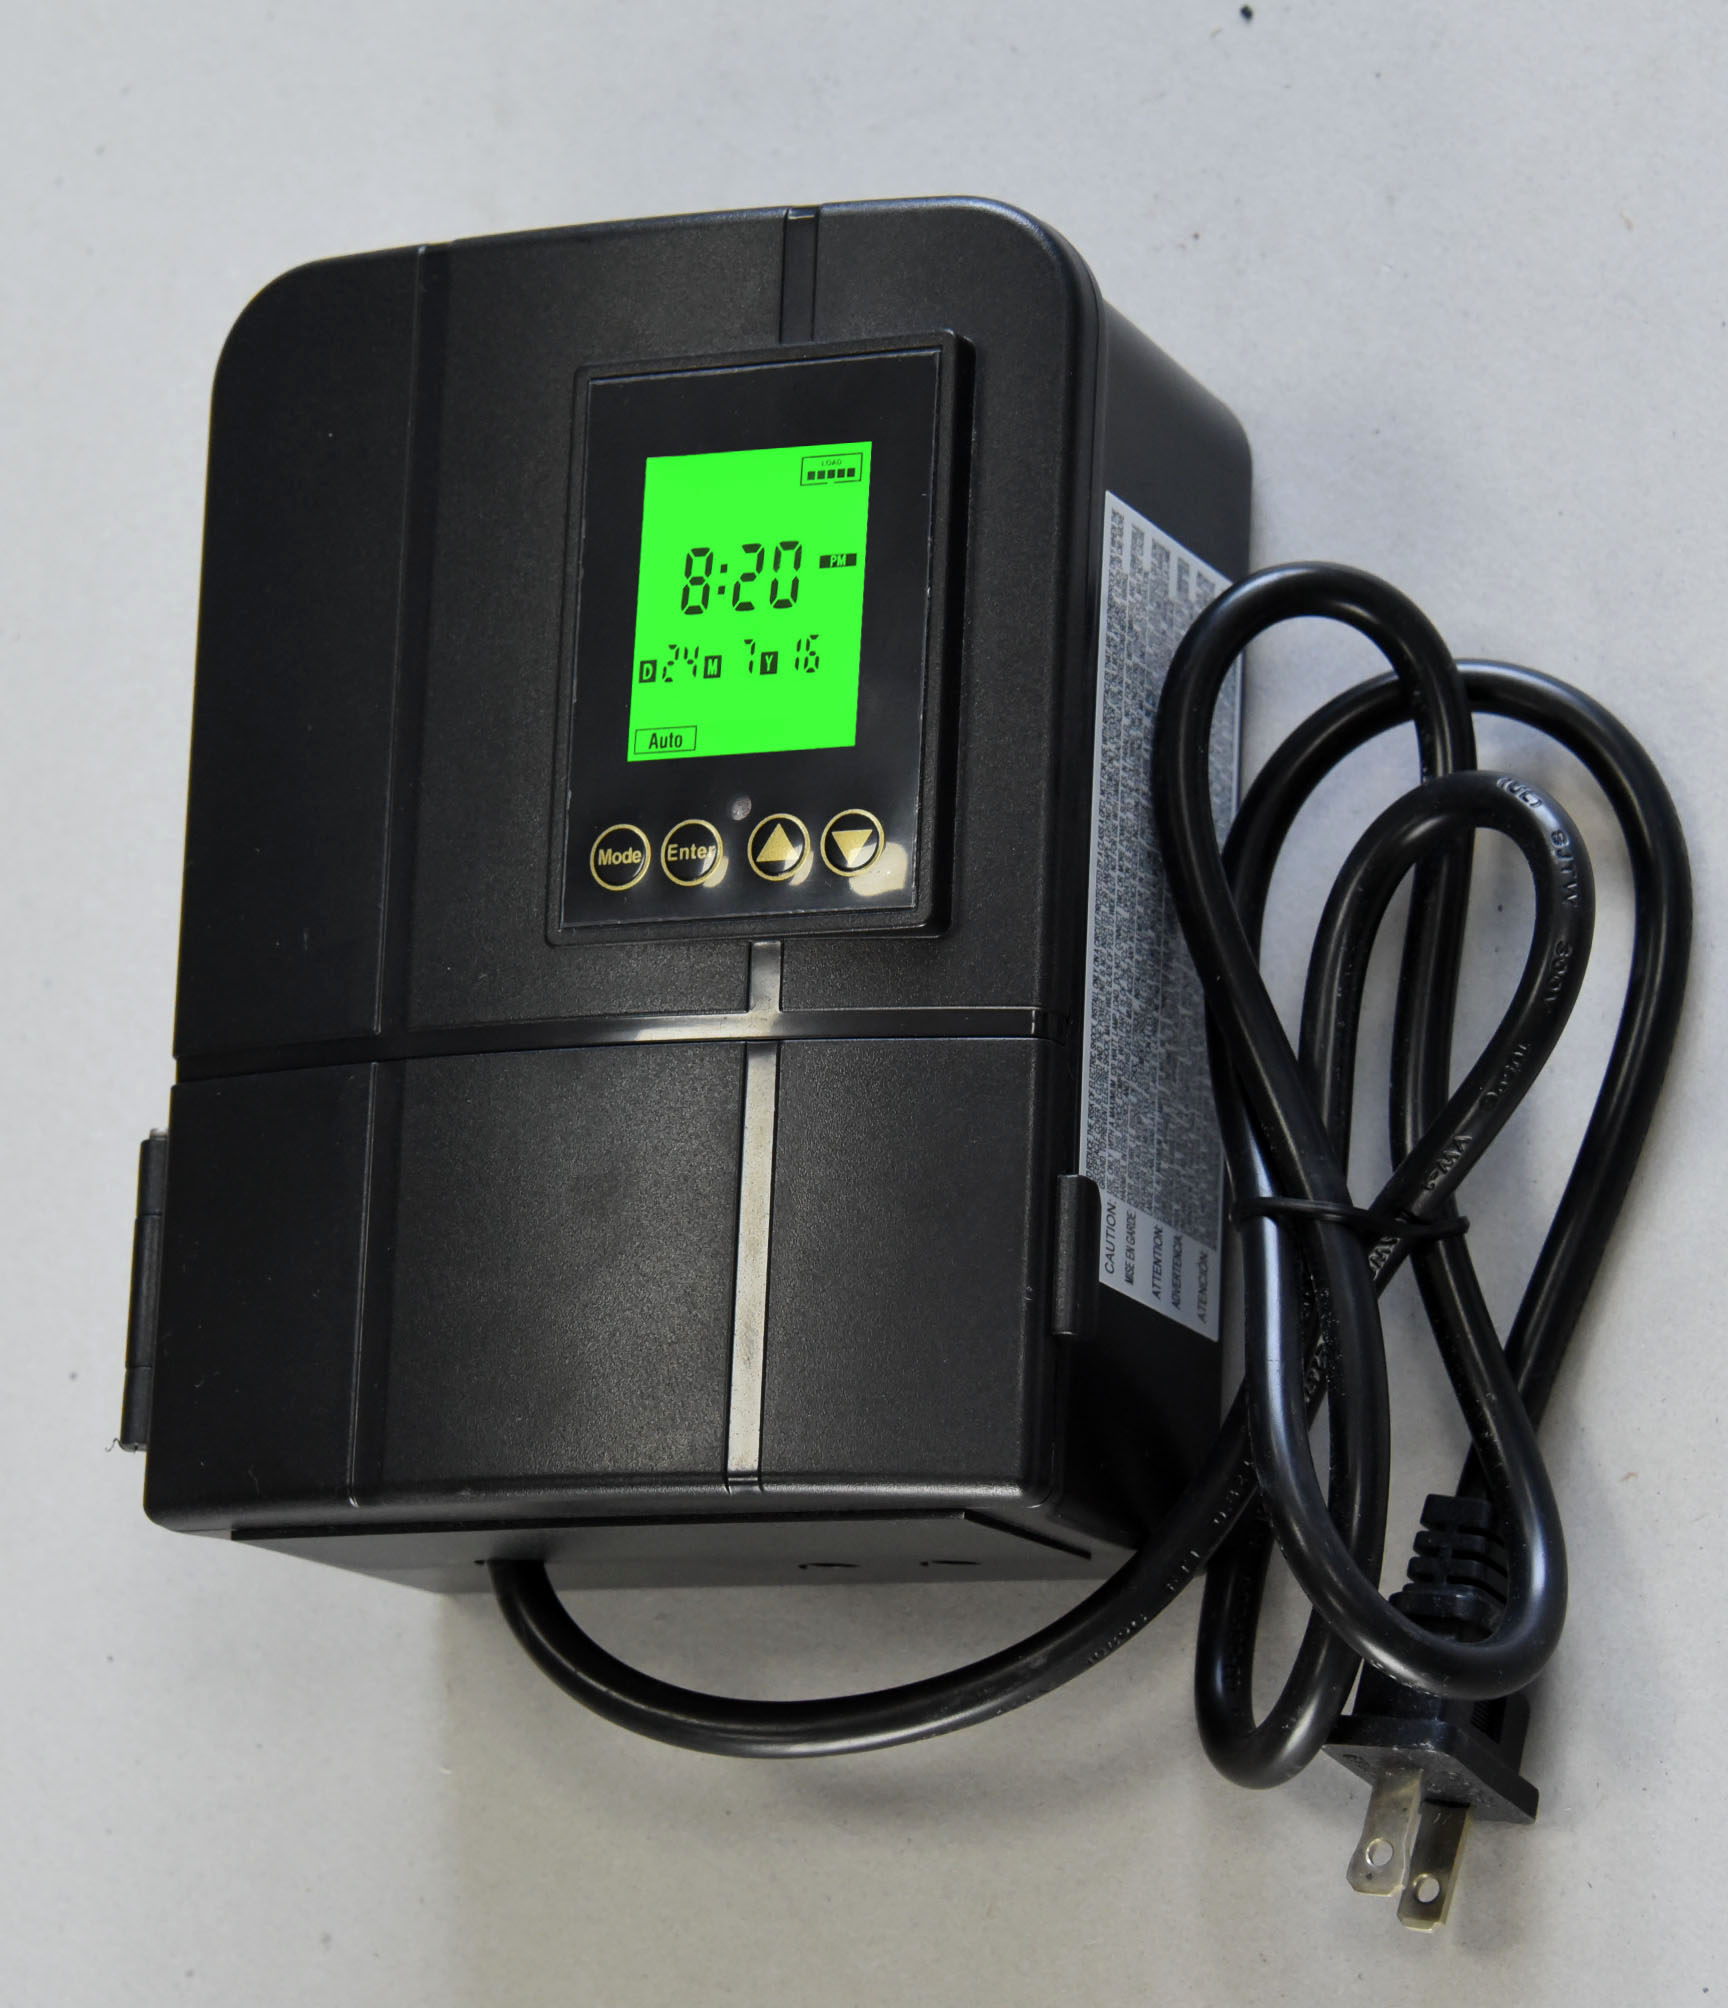 FFL Transformer E000-1699 Dusk-to-Dawn Weatherproof Transformer for Outdoor Landscape Lighting